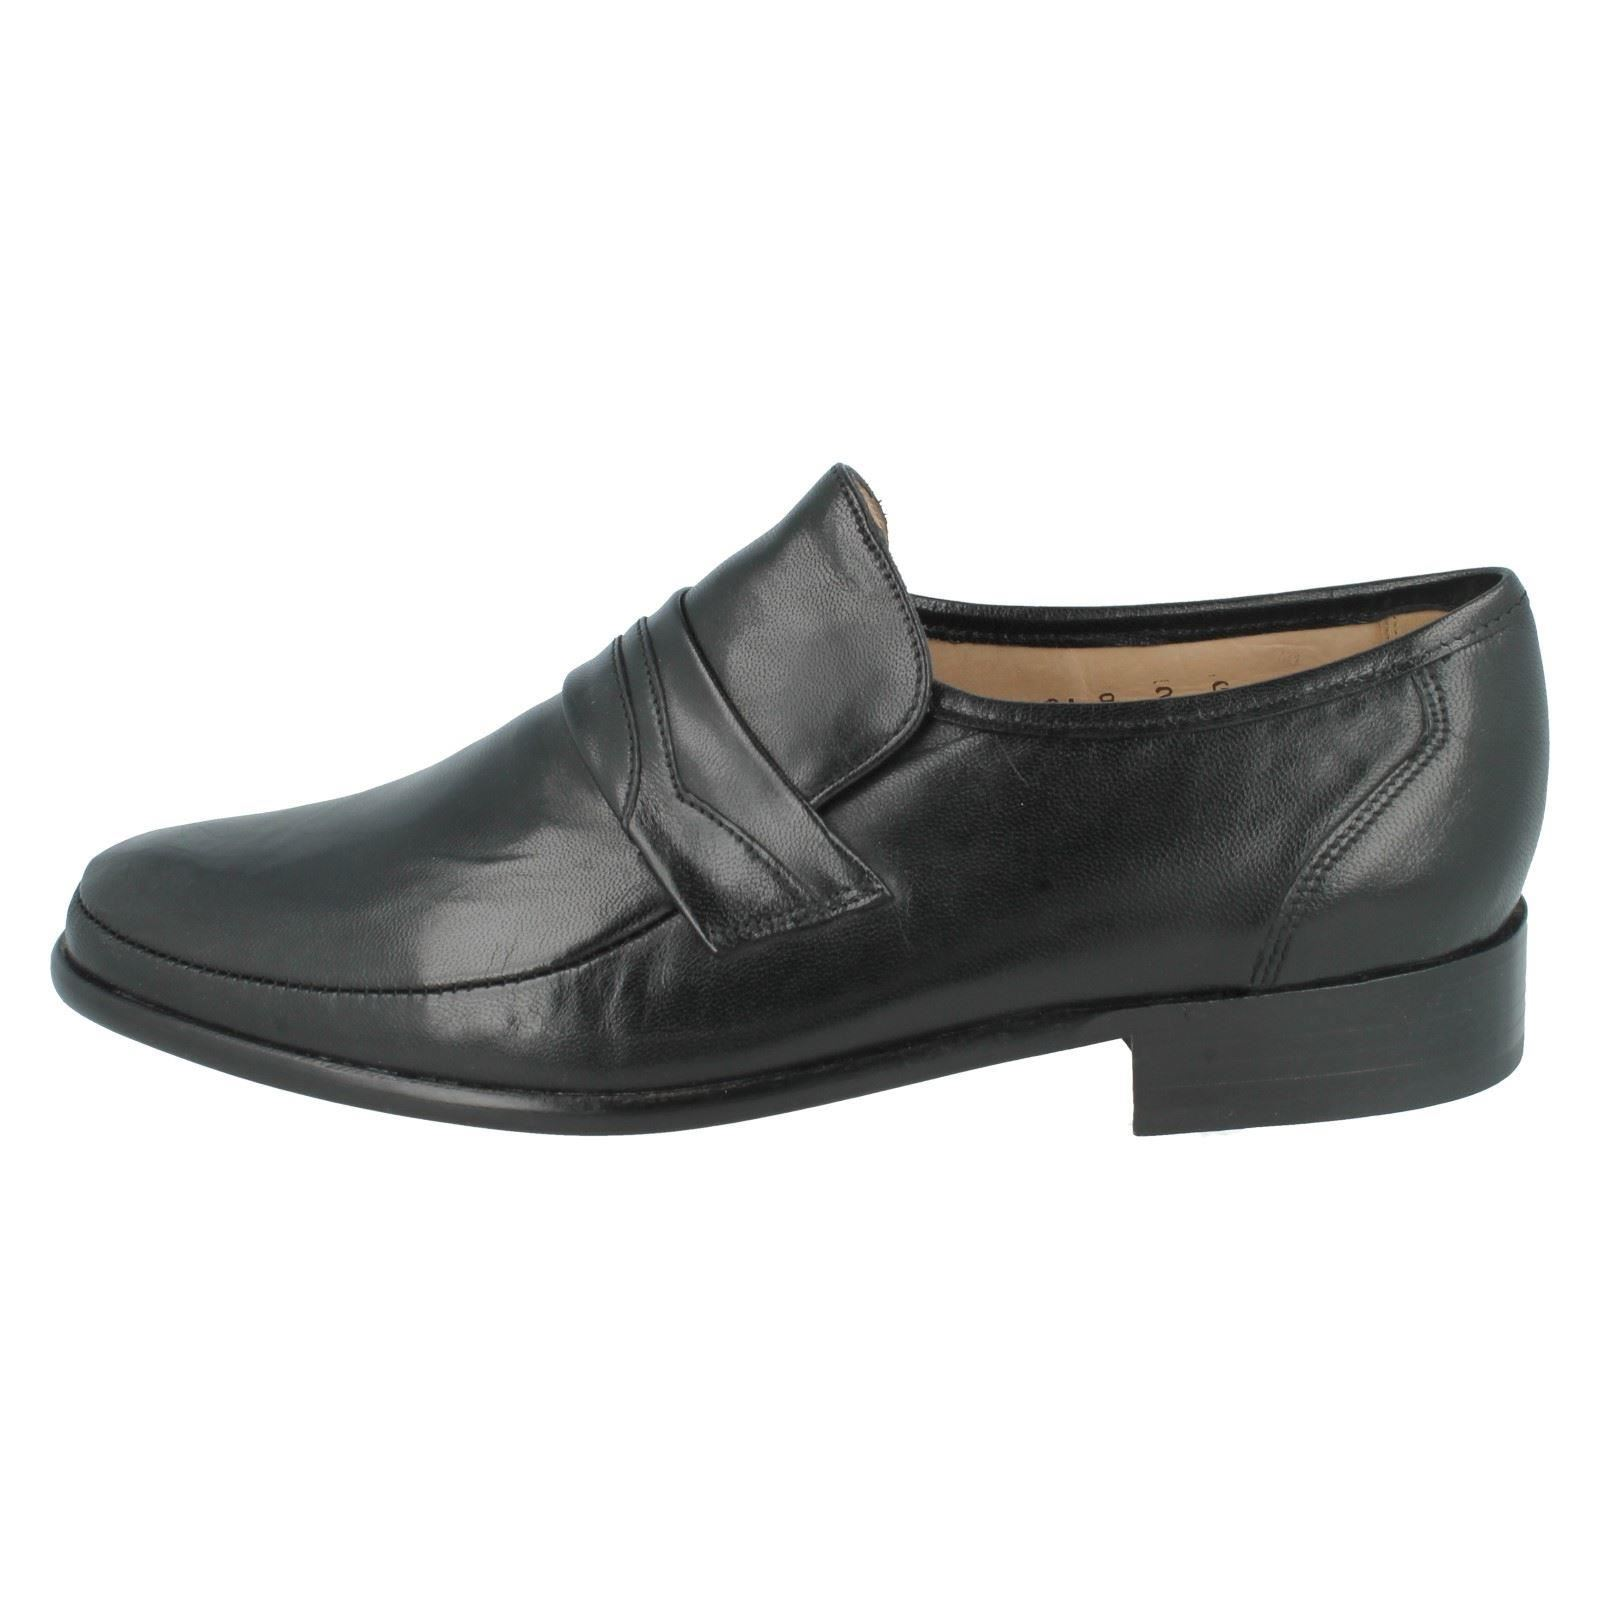 Homme Grenson Formelle Chaussures Raccord G 35022 Style-Swindon 35022 G eaba14